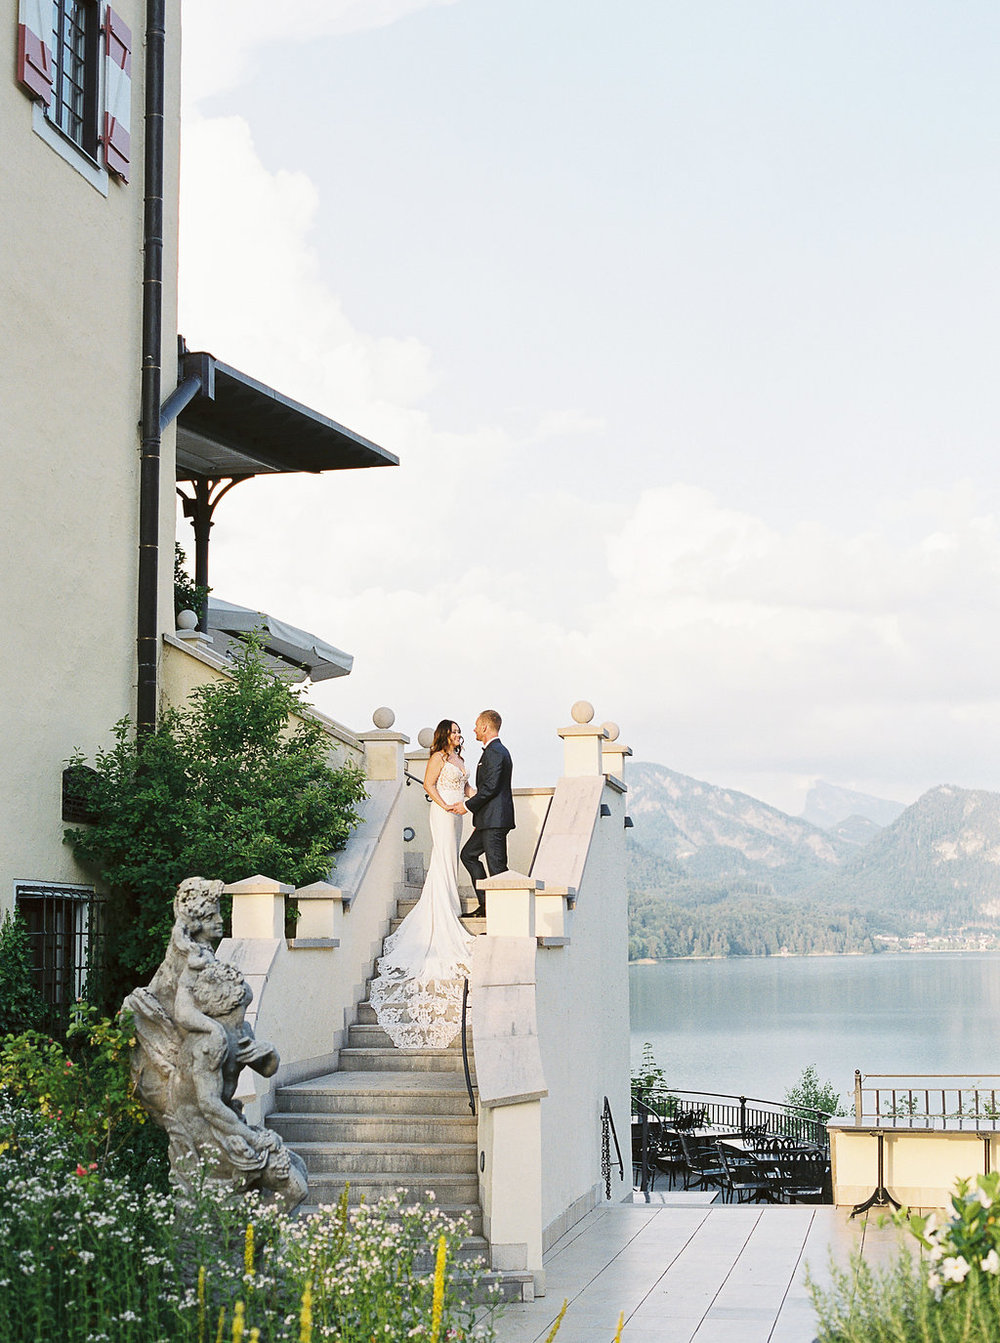 Luxe Navy and Pink Wedding at Schloss Fuschl in Austria by Tanja Kibogo11.JPG